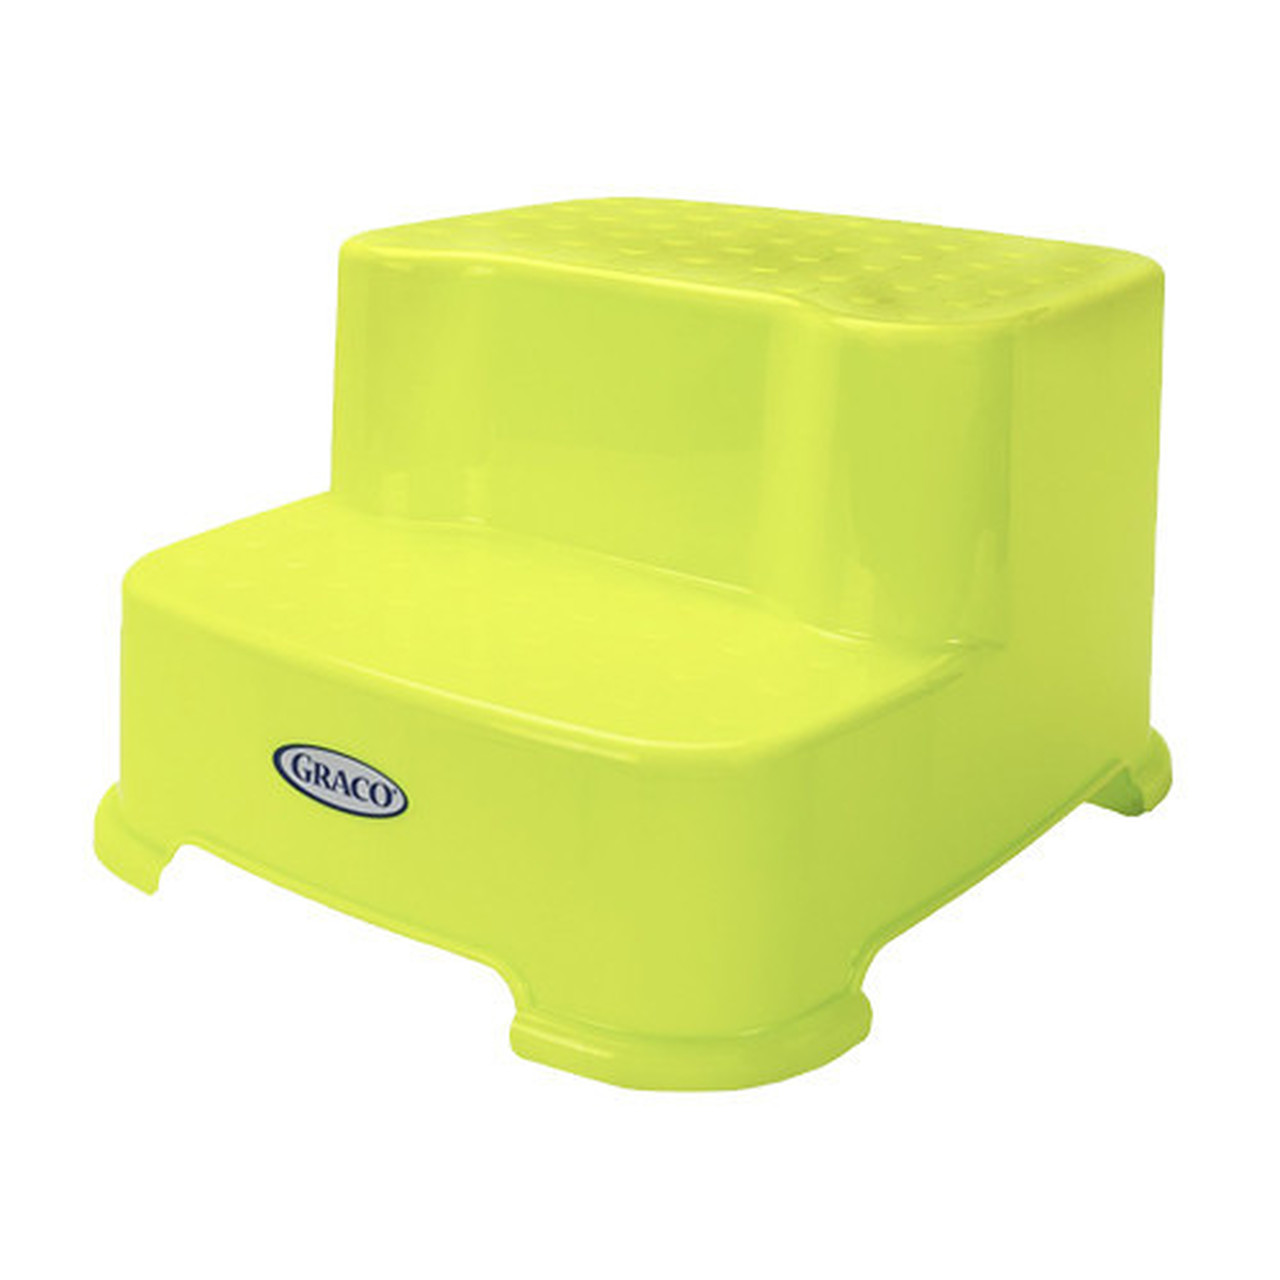 Graco Transitions Step Stool